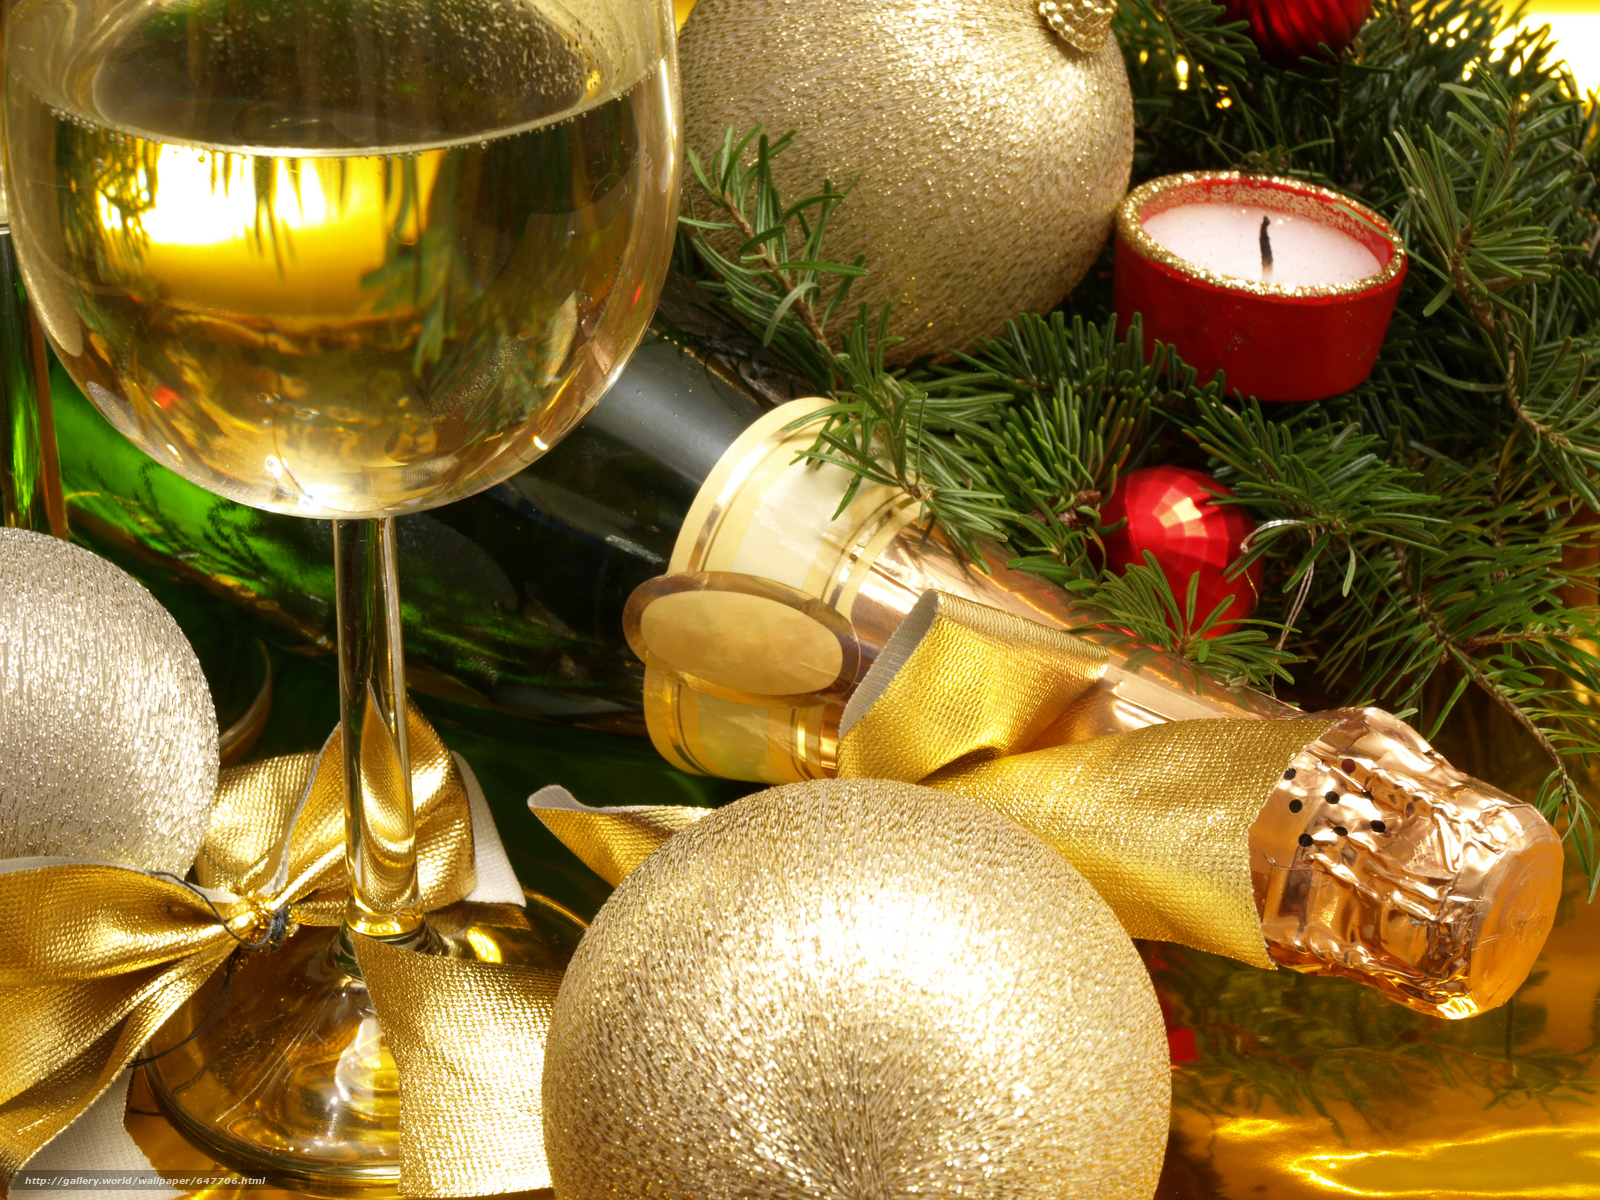 Download wallpaper New Year's table,  Champagne,  stemware free desktop wallpaper in the resolution 7296x5472 — picture №647706